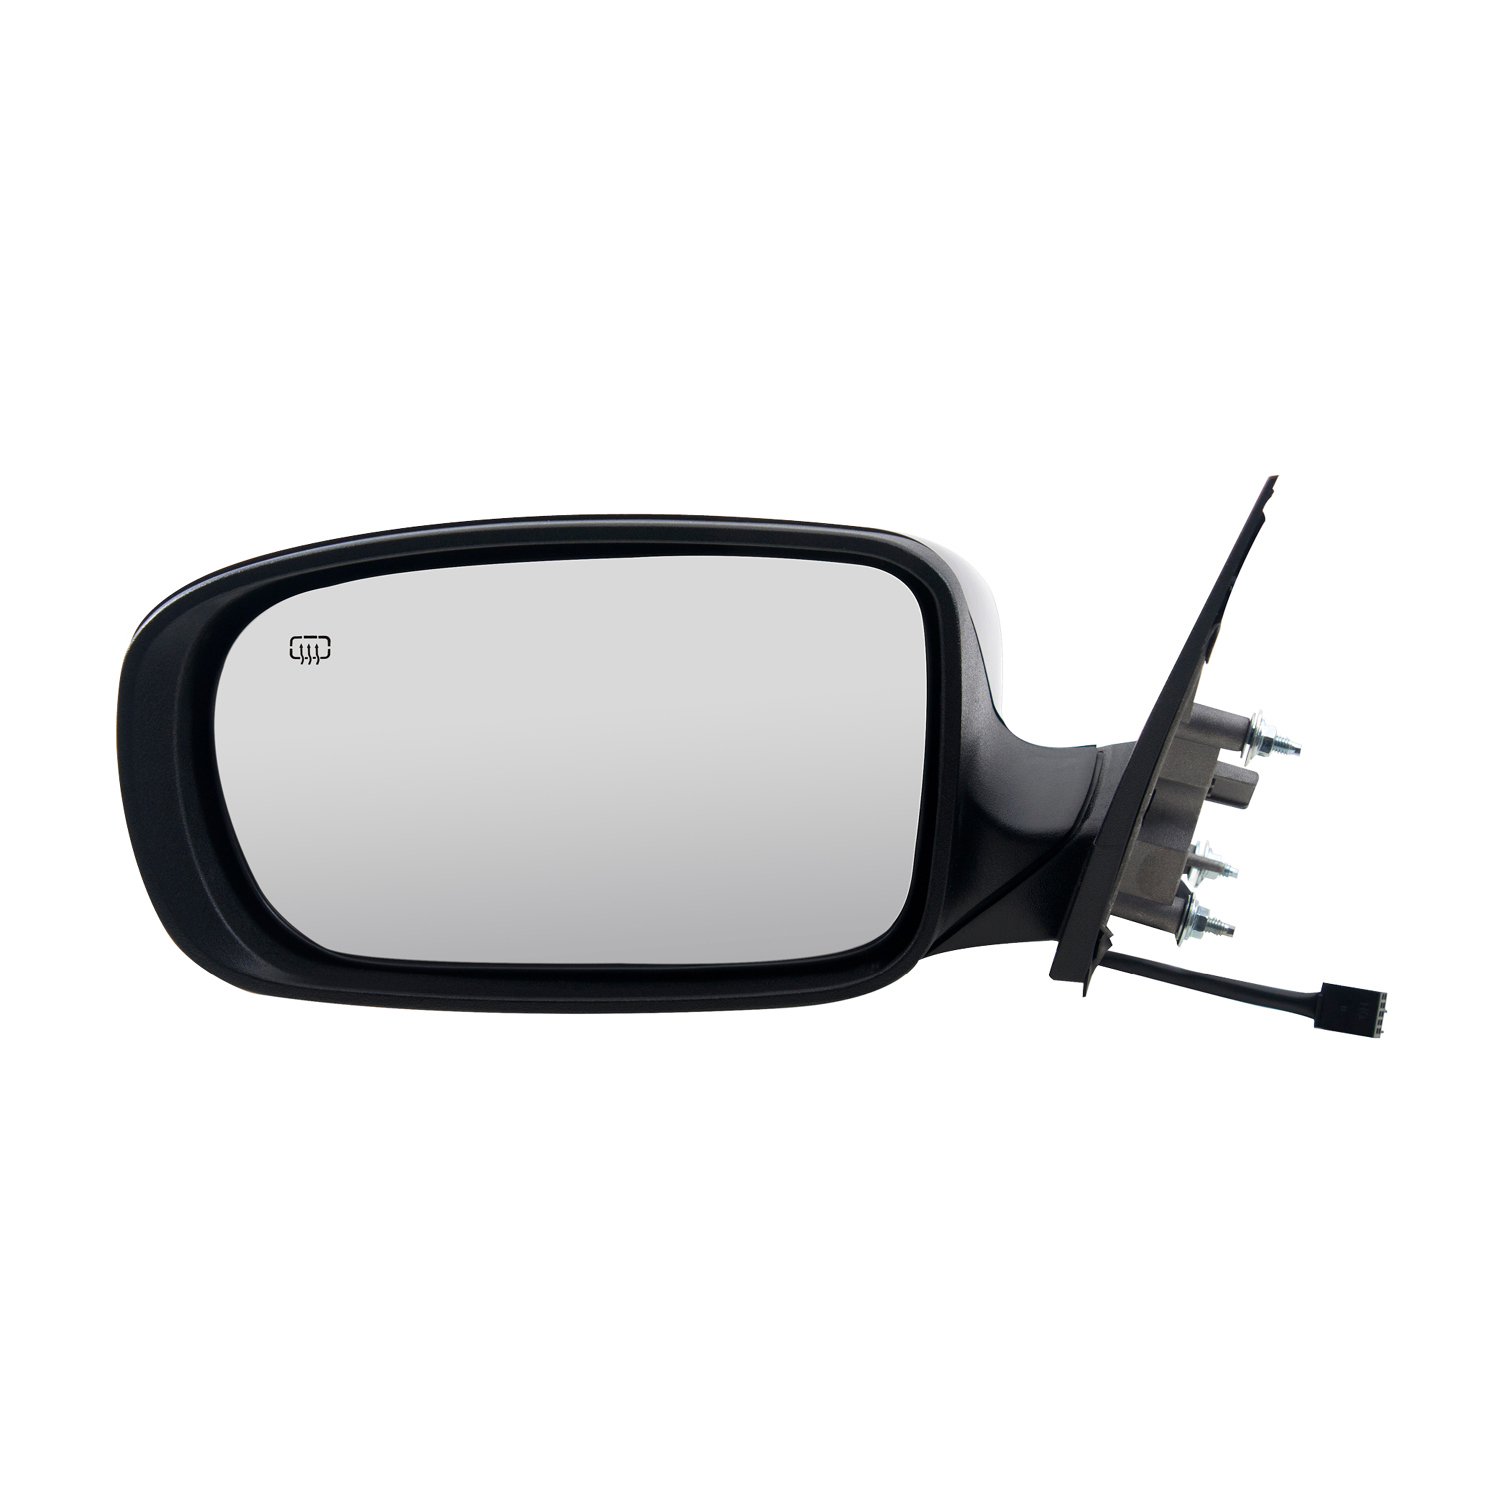 w//o Memory Code GTS//X8 Fit System Passenger Side Mirror for Chrysler 300 Sedan Textured Black w//PTM Cover Heated Power Foldaway